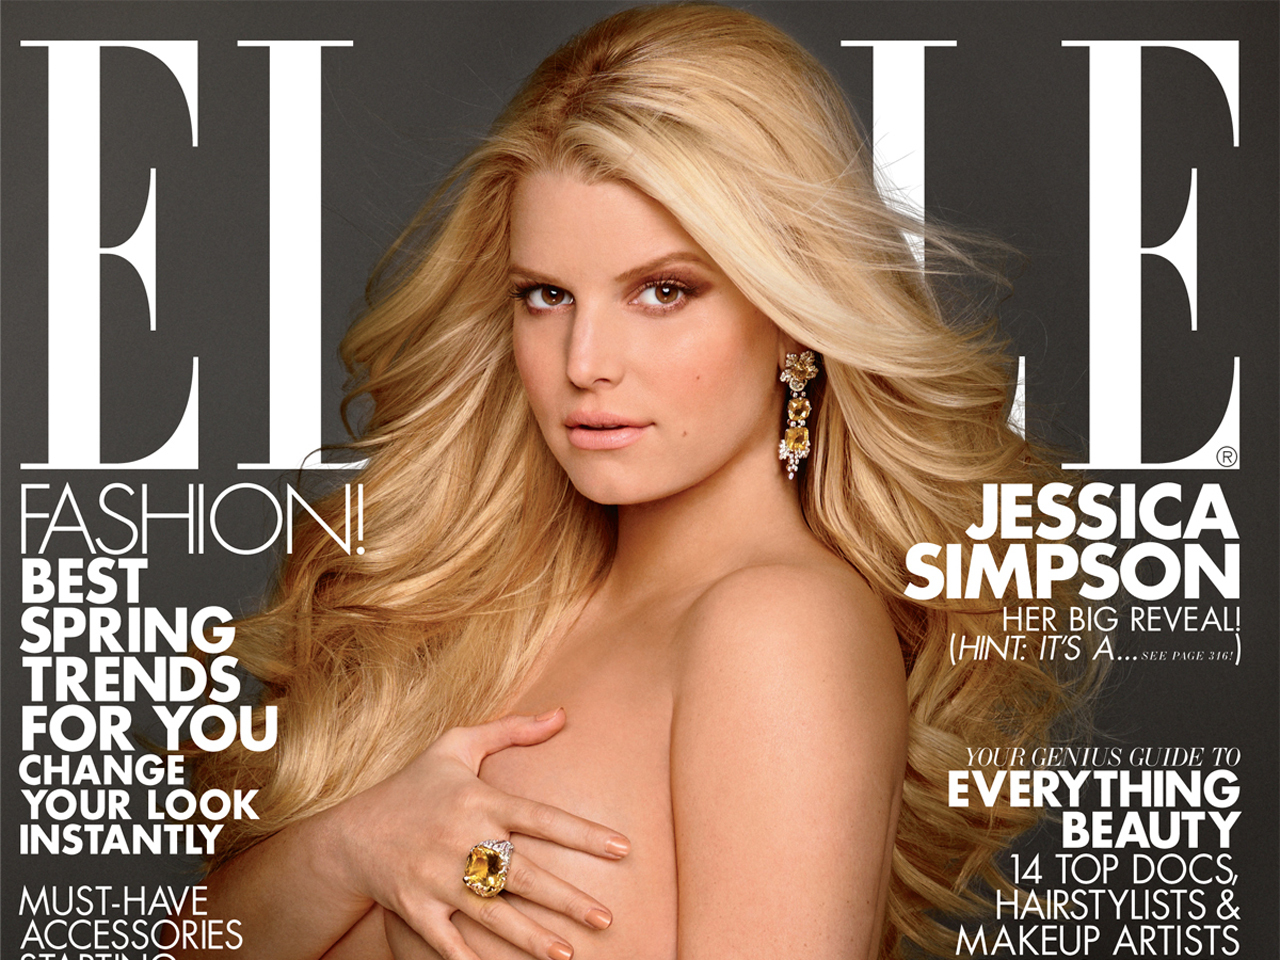 Jessica Simpson poses nude on ELLE cover, says she's having a girl